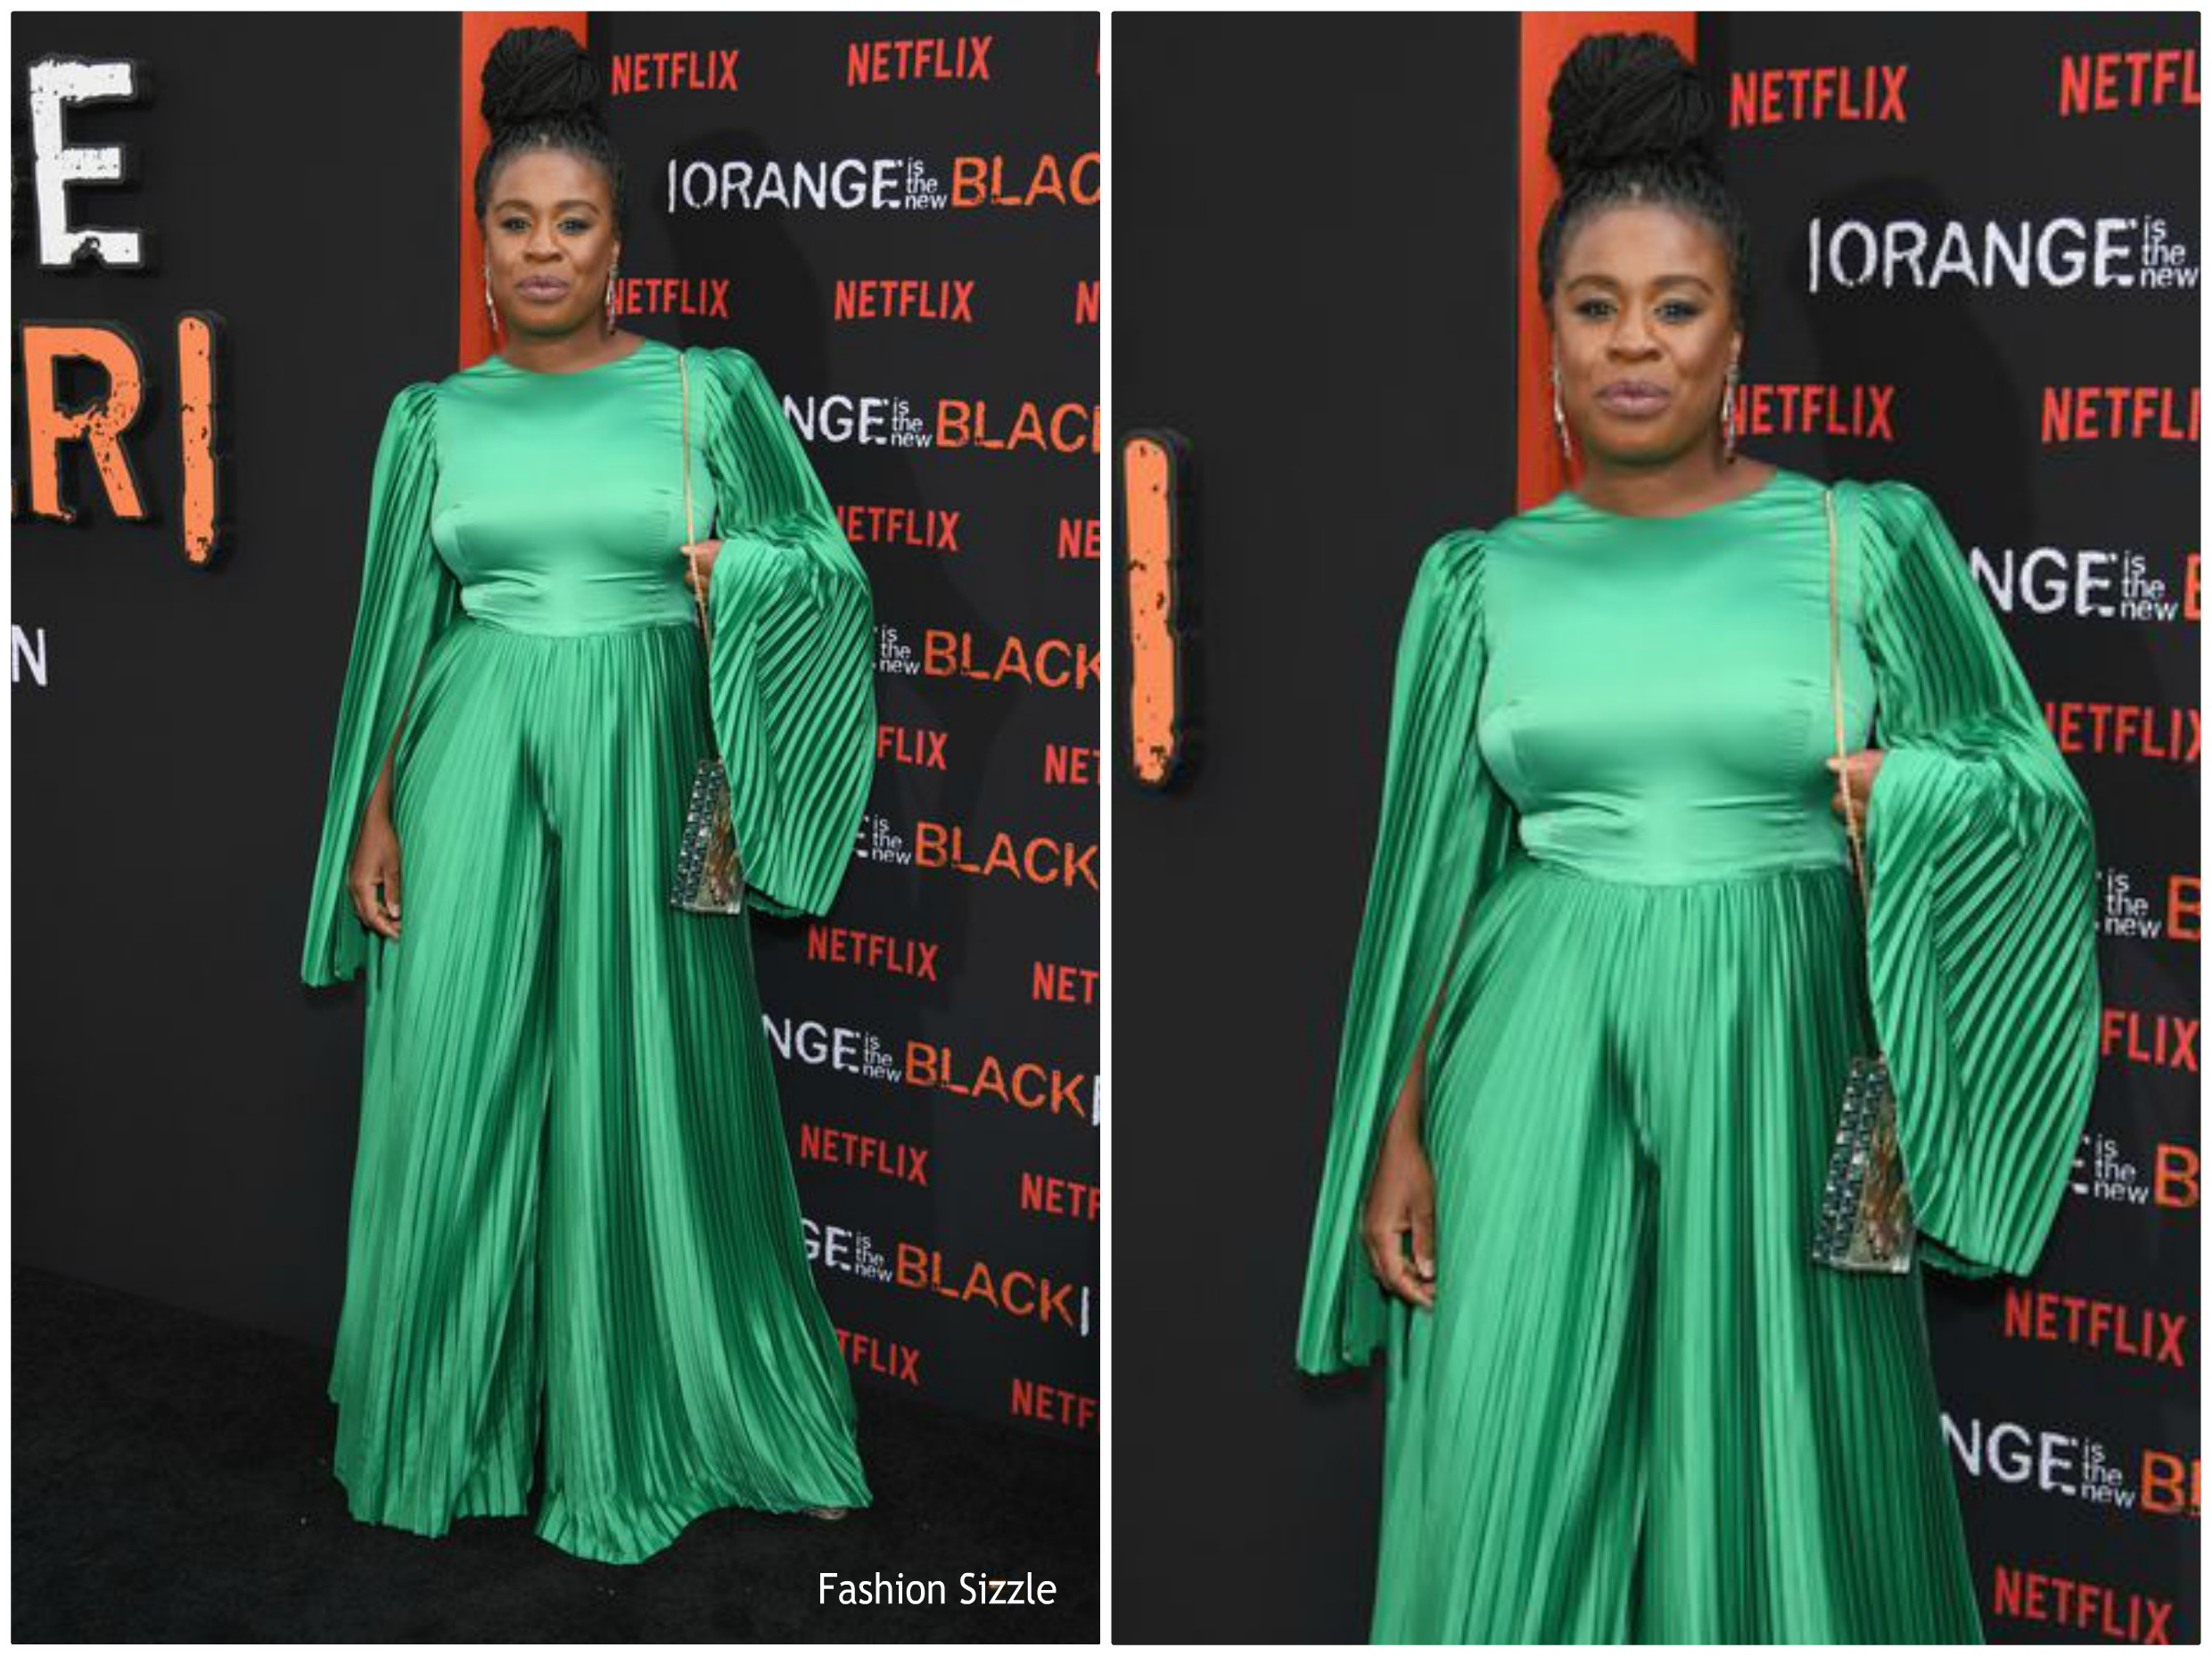 uzo-aduba-in-semsem-orange is the new -black-final-season-ny-premiere